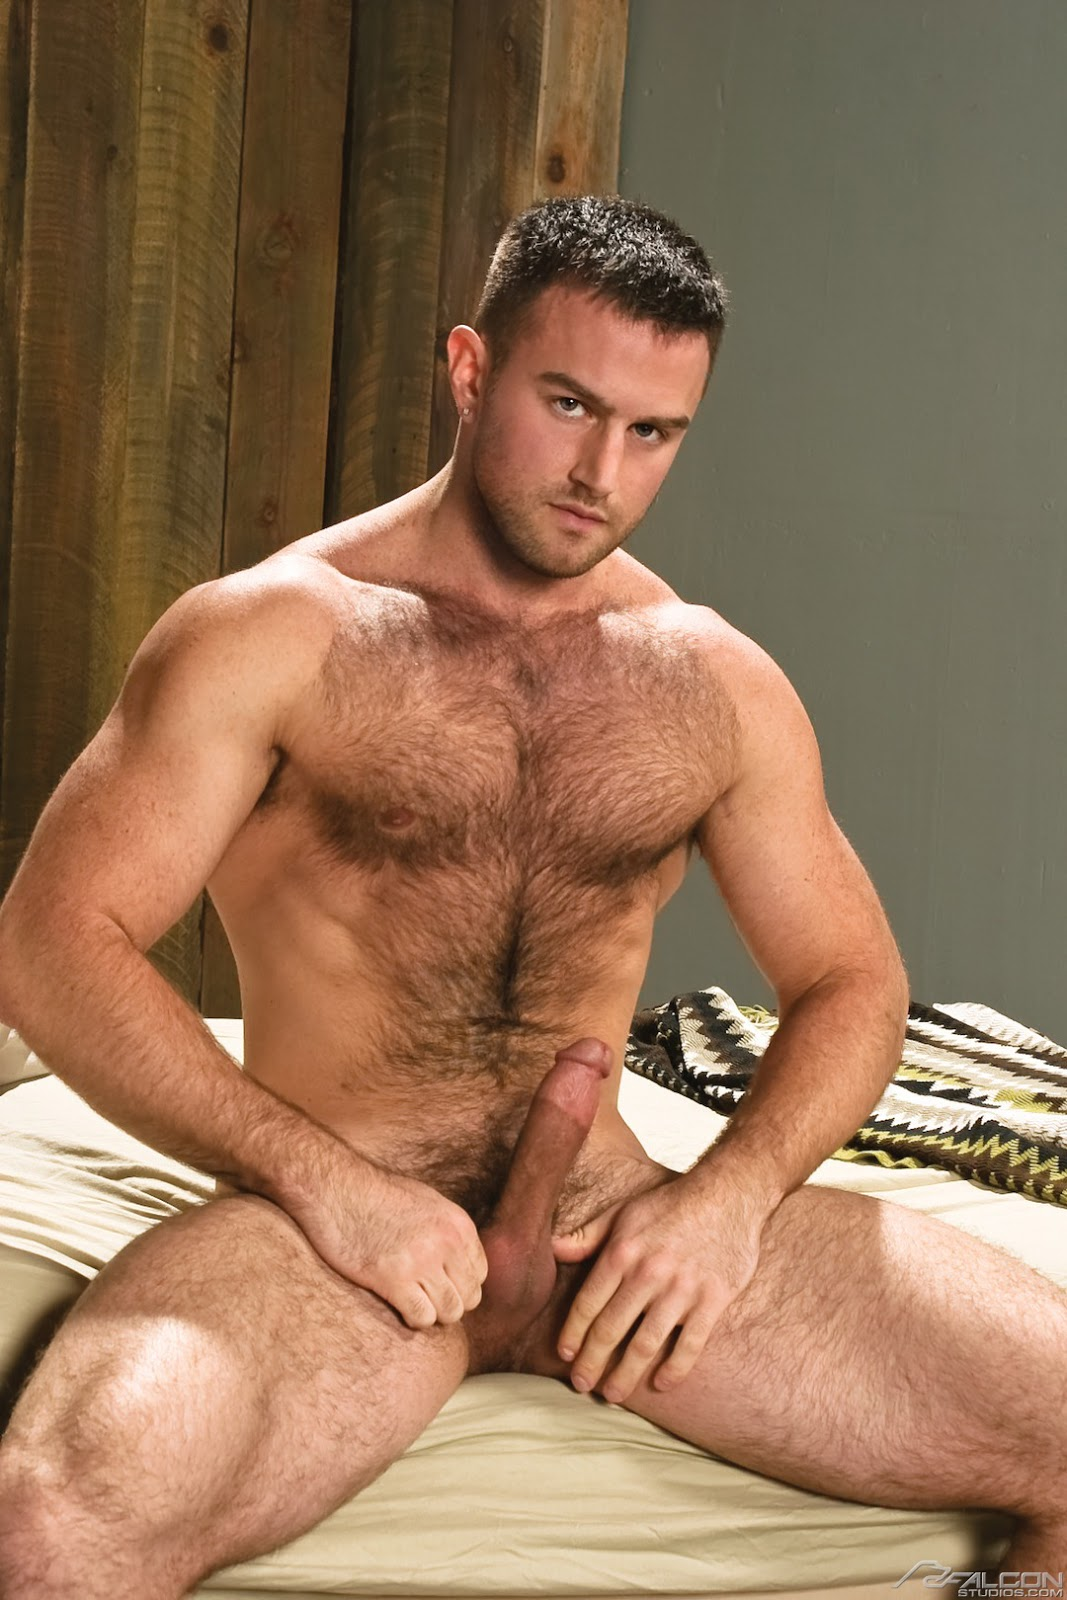 hairy chest gay nude men